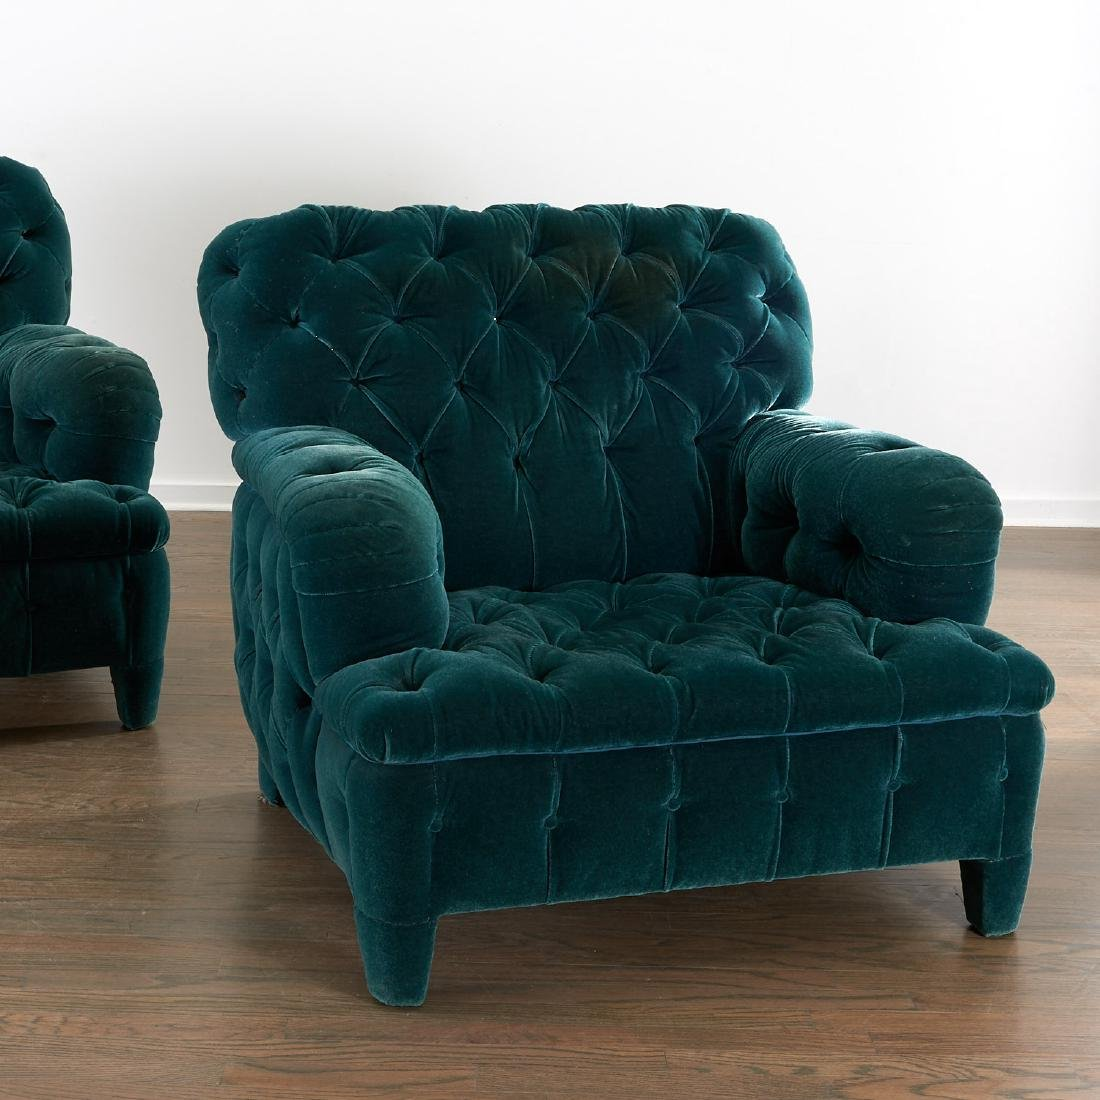 Important pair of club chairs by Jacques Grange